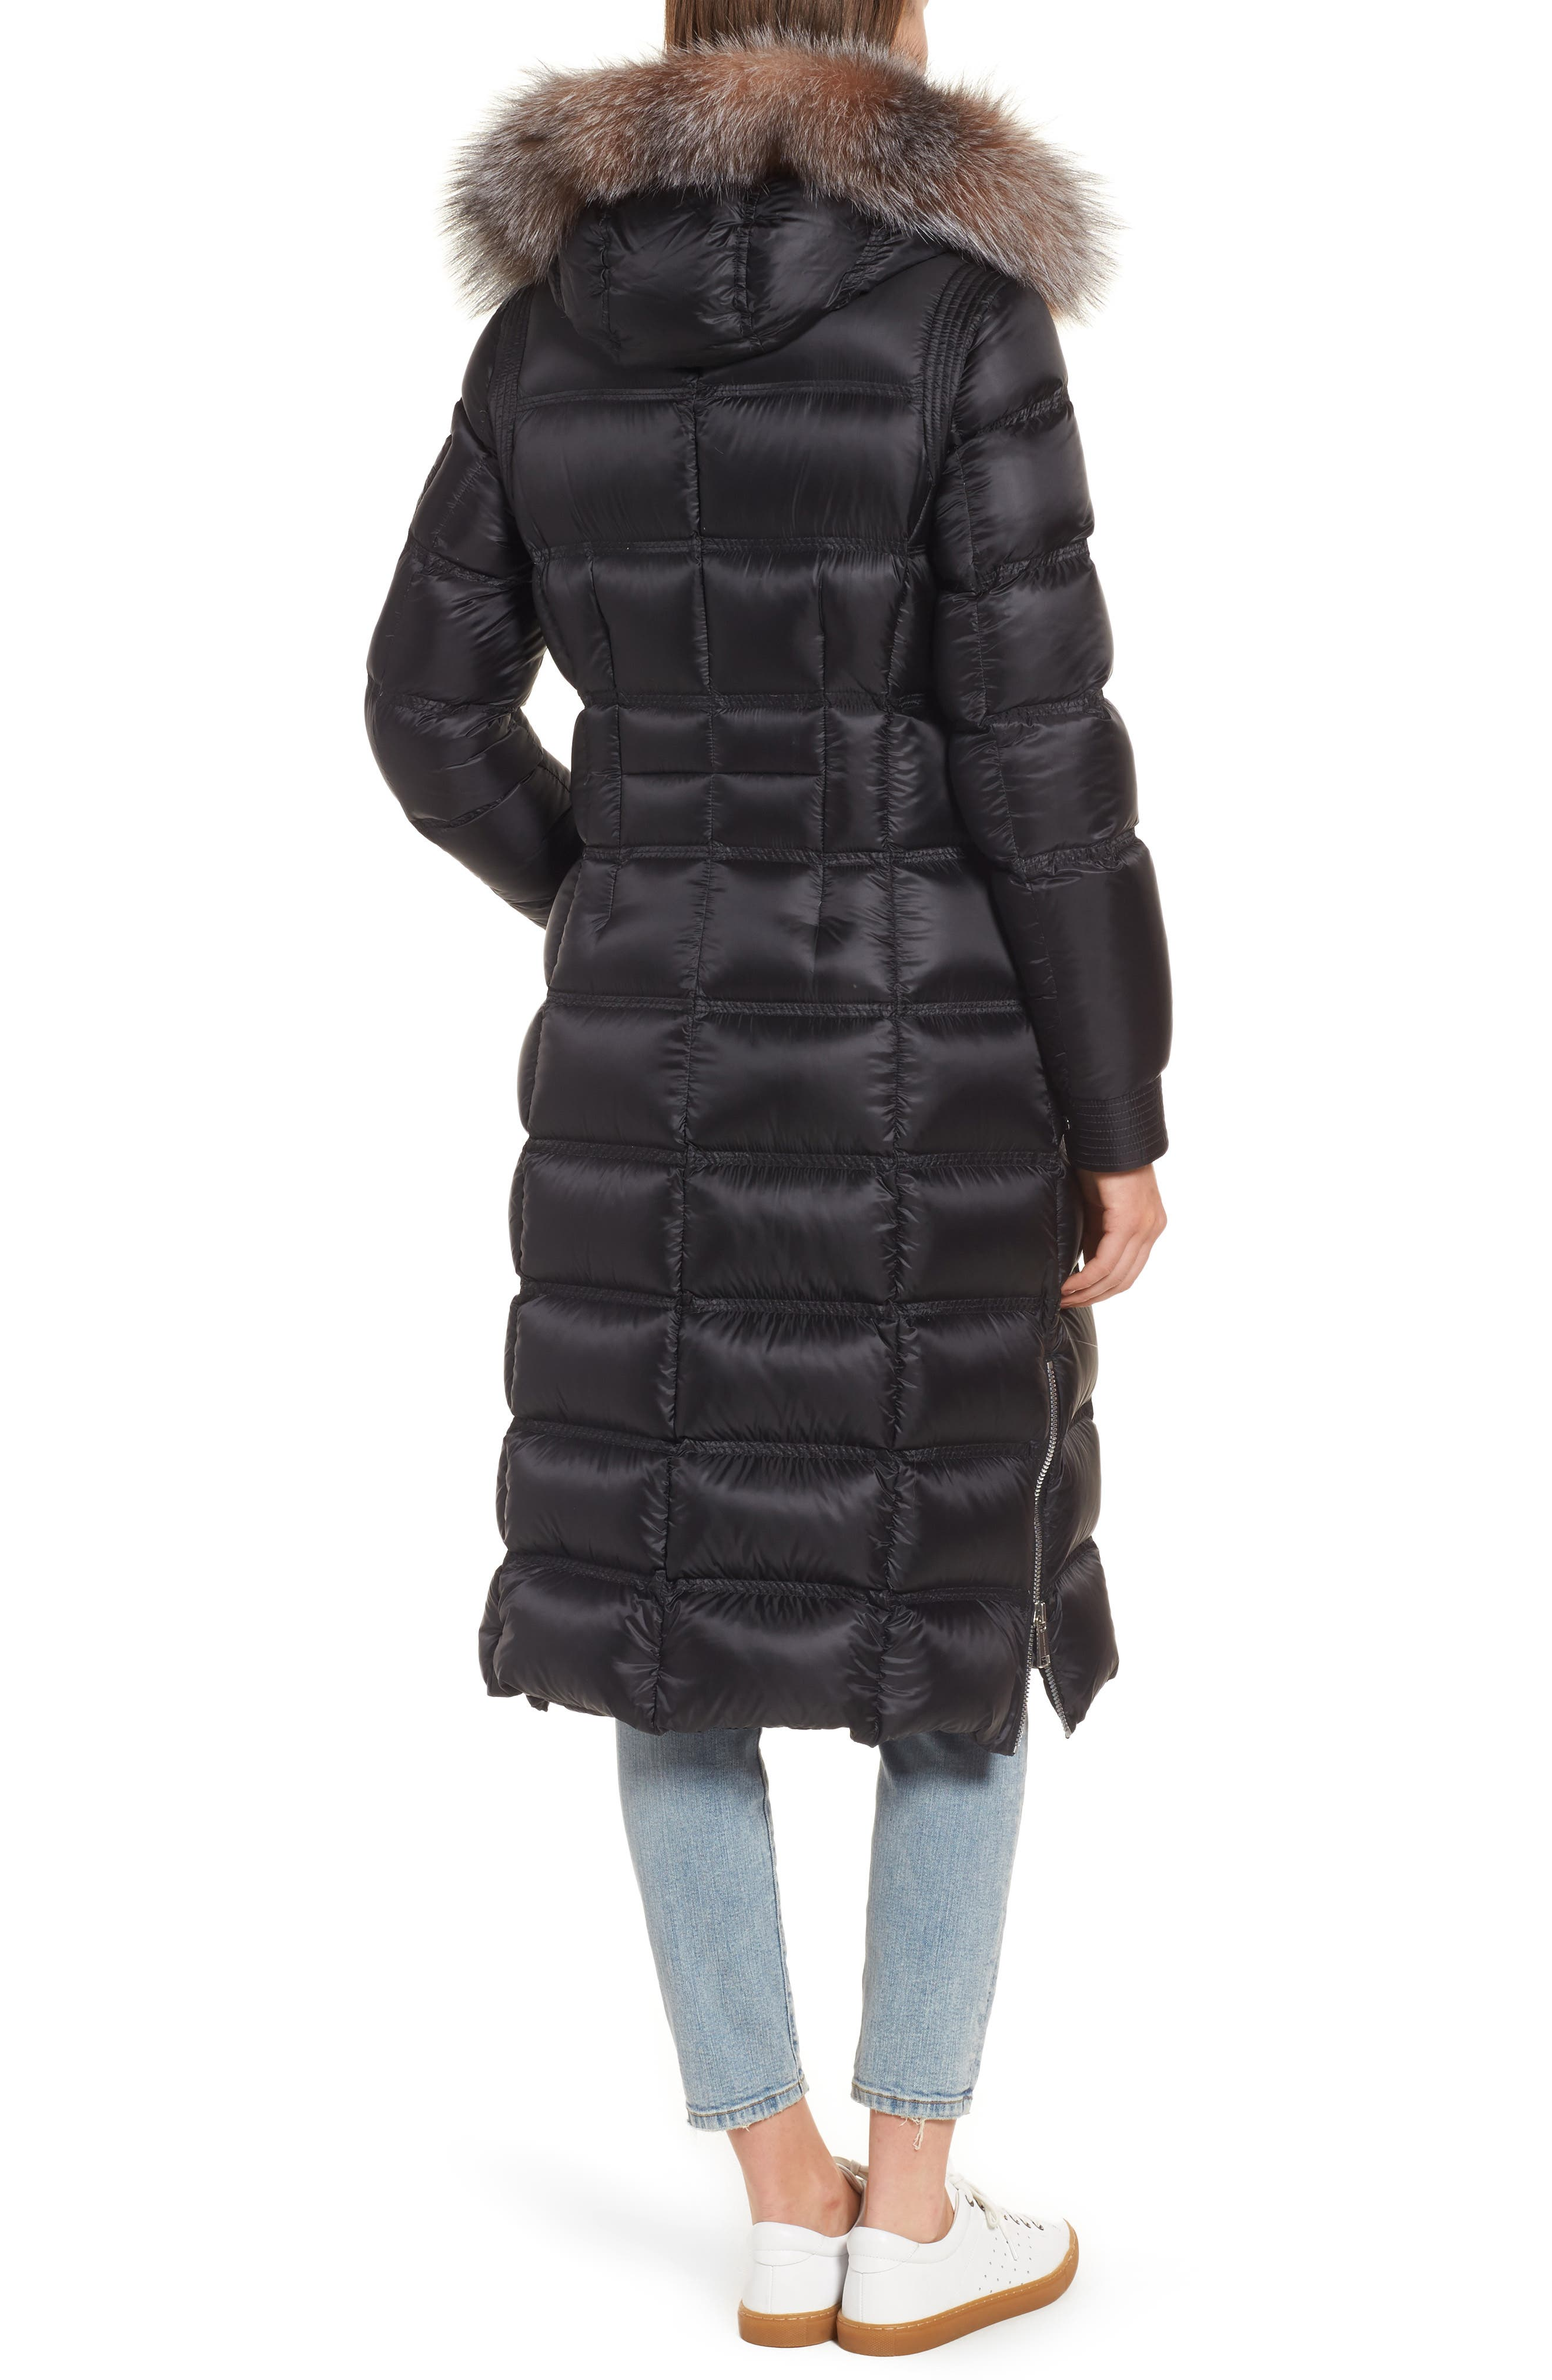 Charlize 42 Hooded Water Resistant Down Coat with Genuine Fox Fur Trim,                             Alternate thumbnail 2, color,                             Black